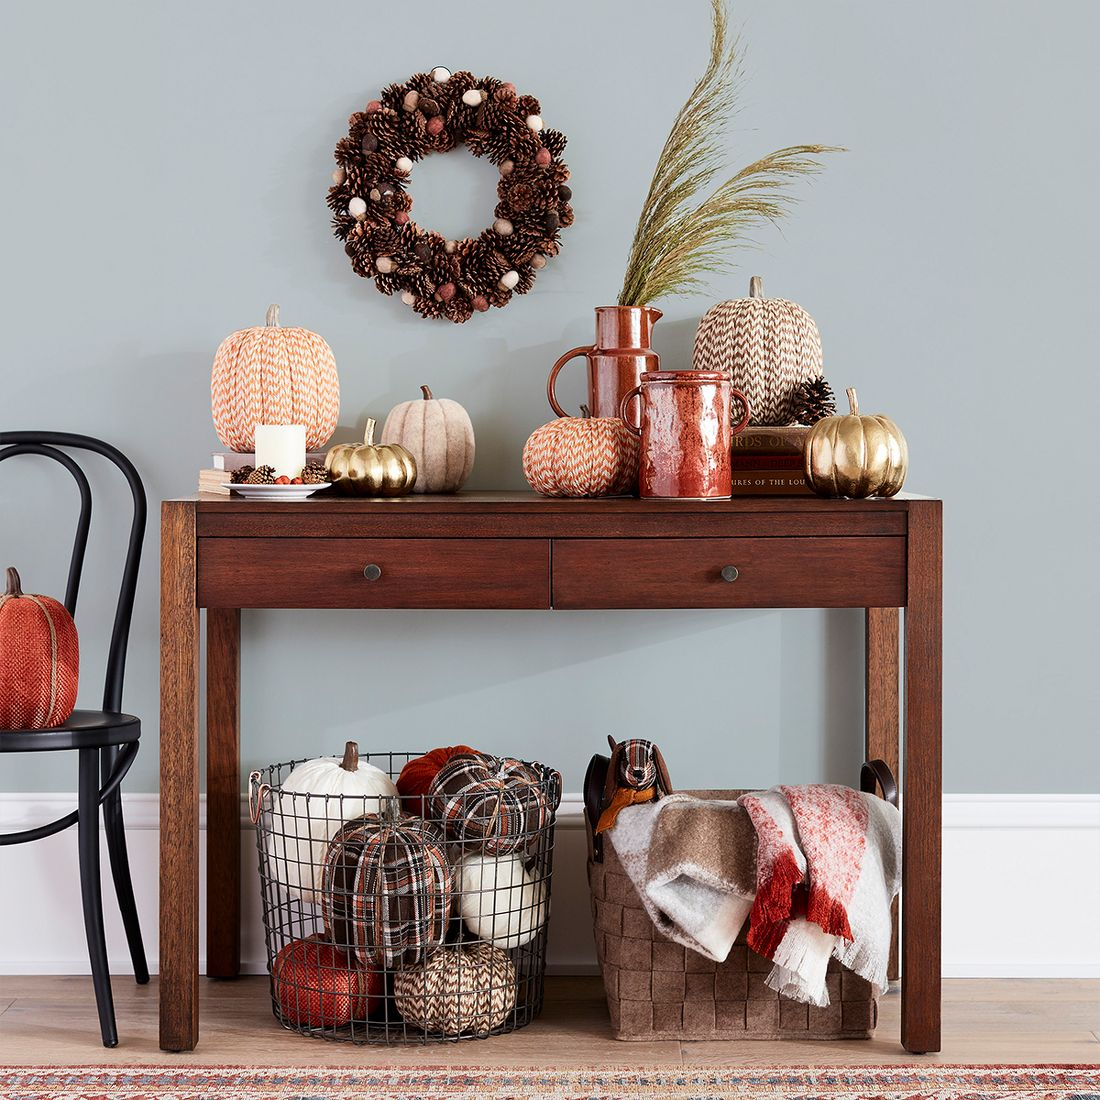 Fall decorations target